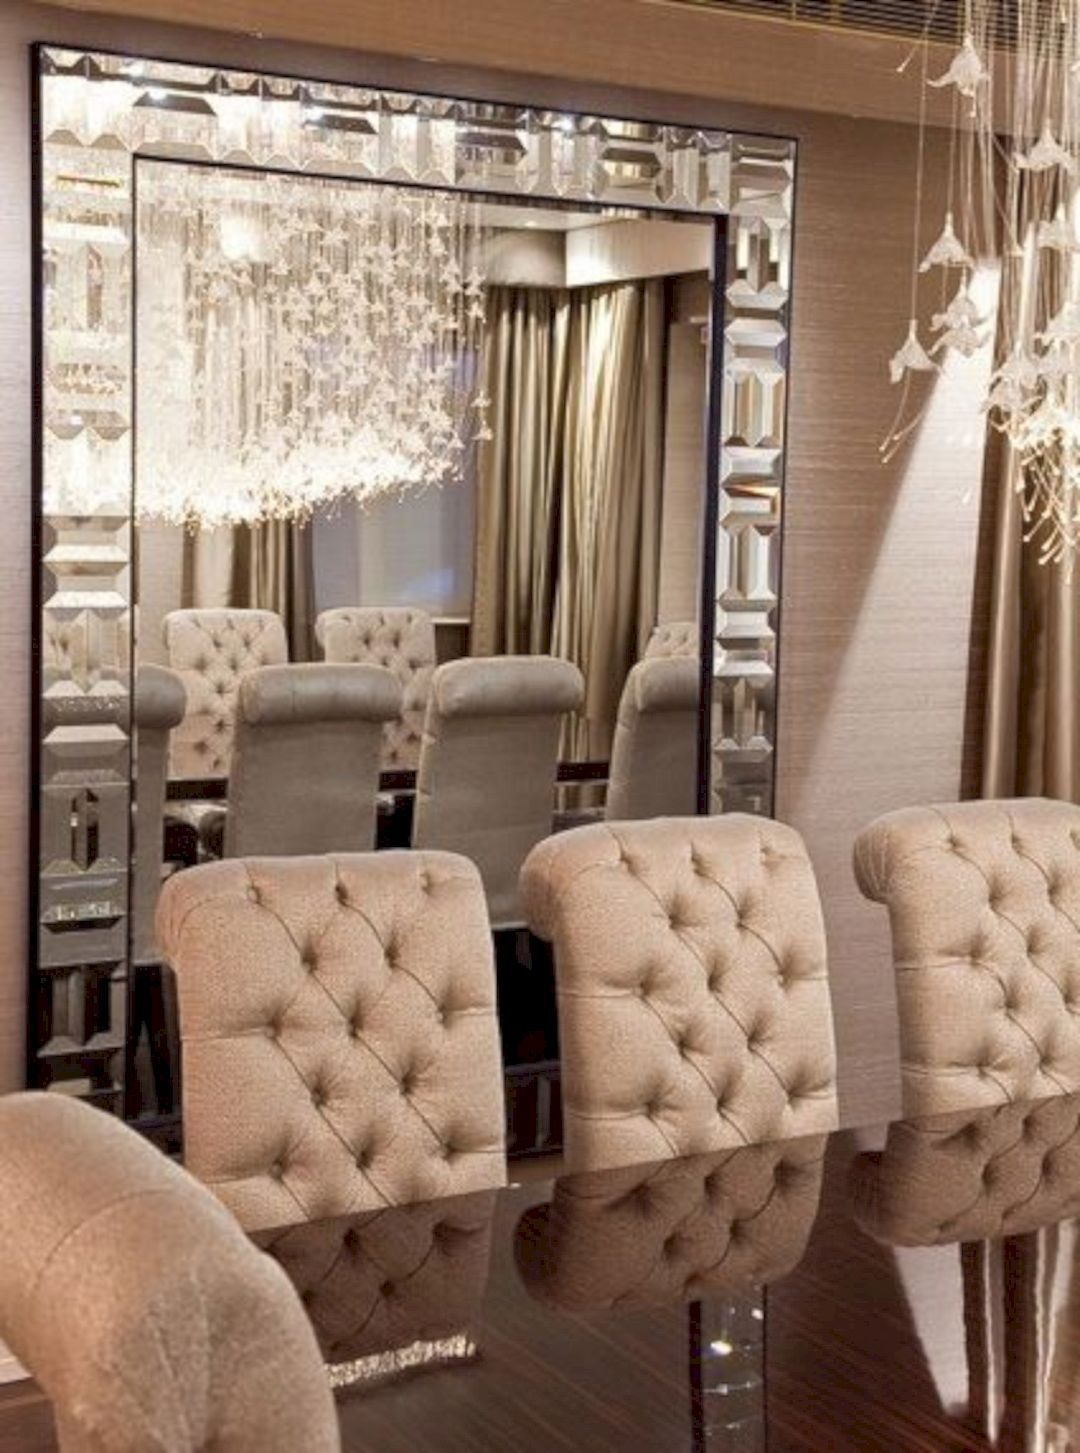 Exceptionnel 18 Hollywood Glam Room Decoration Ideas  Https://www.futuristarchitecture.com/